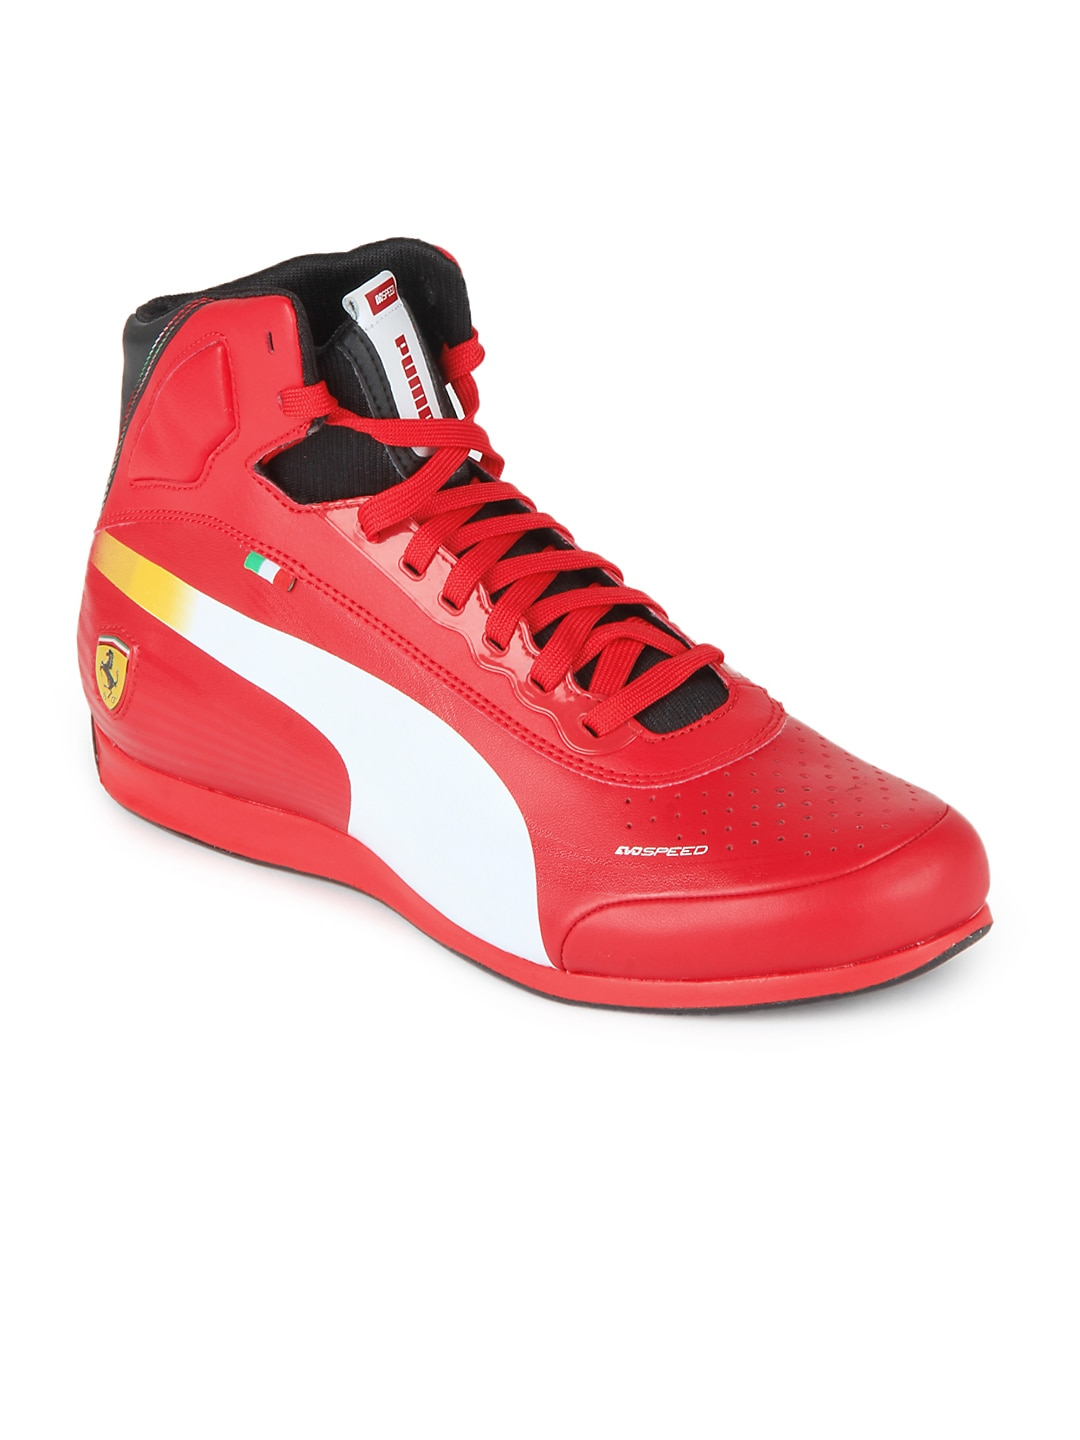 buy puma shoes online india